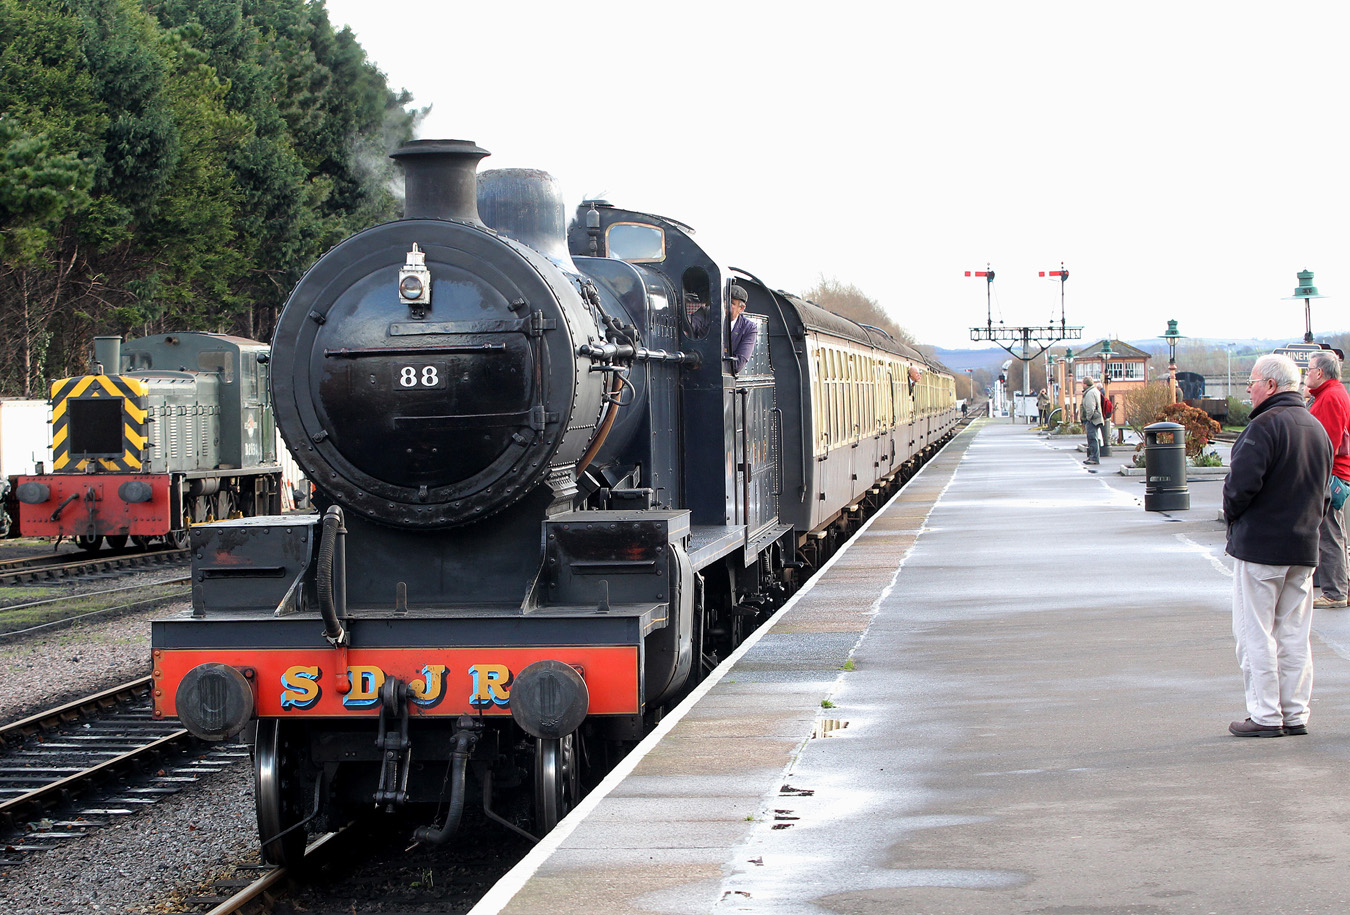 THERE will be more than just trains on offer at the West Somerset Railway's Ladies Day. PHOTO: Steve G